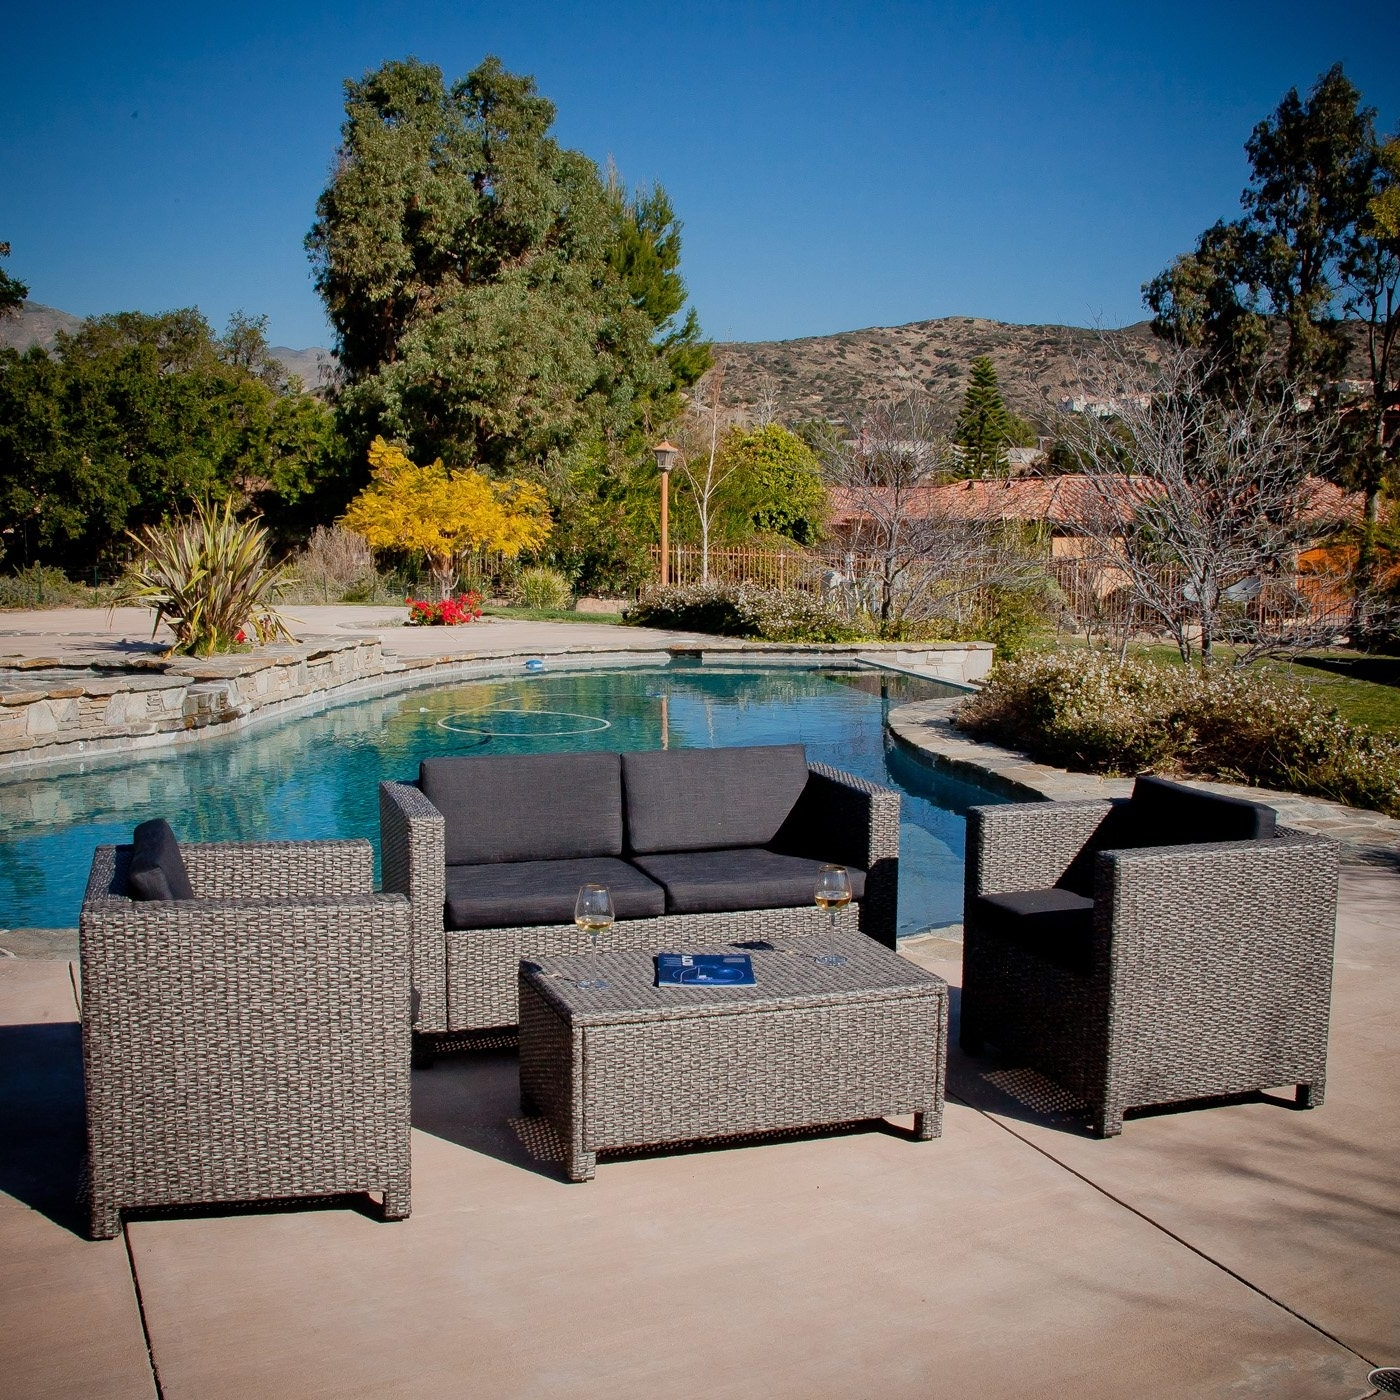 Lowe's Throughout Lowes Patio Furniture Conversation Sets (View 10 of 20)